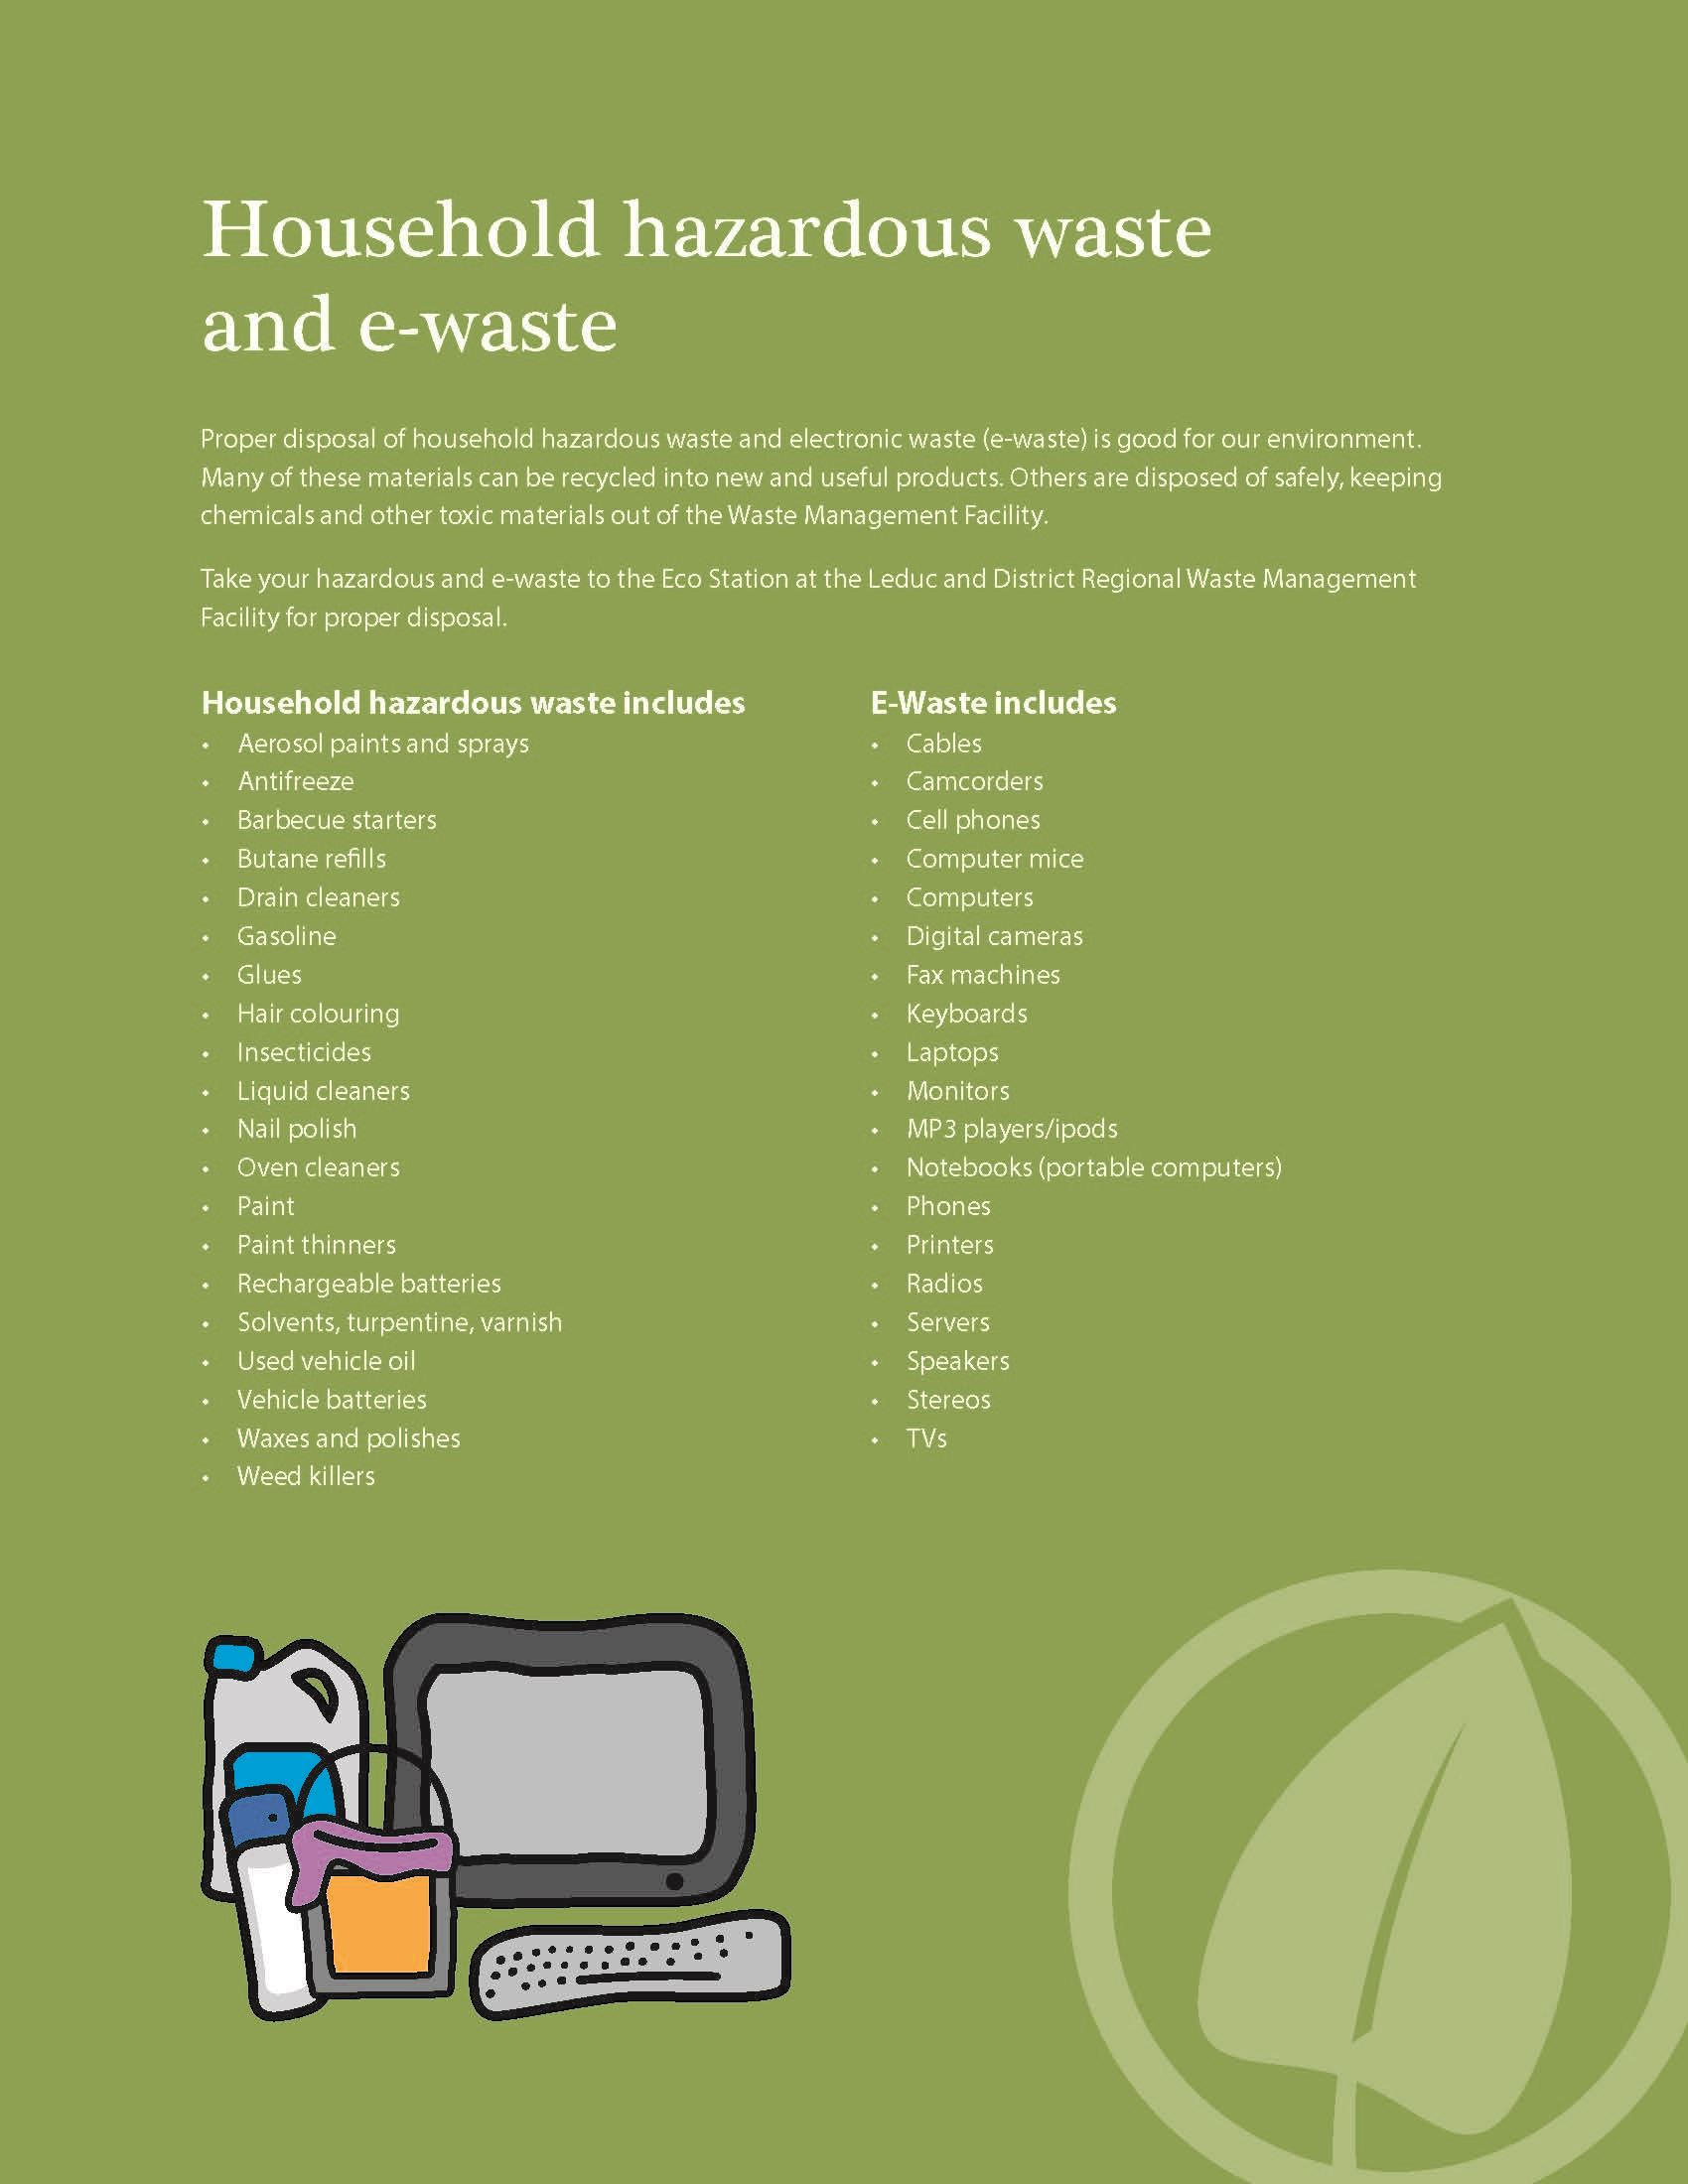 Household Hazardous Waste and e-waste